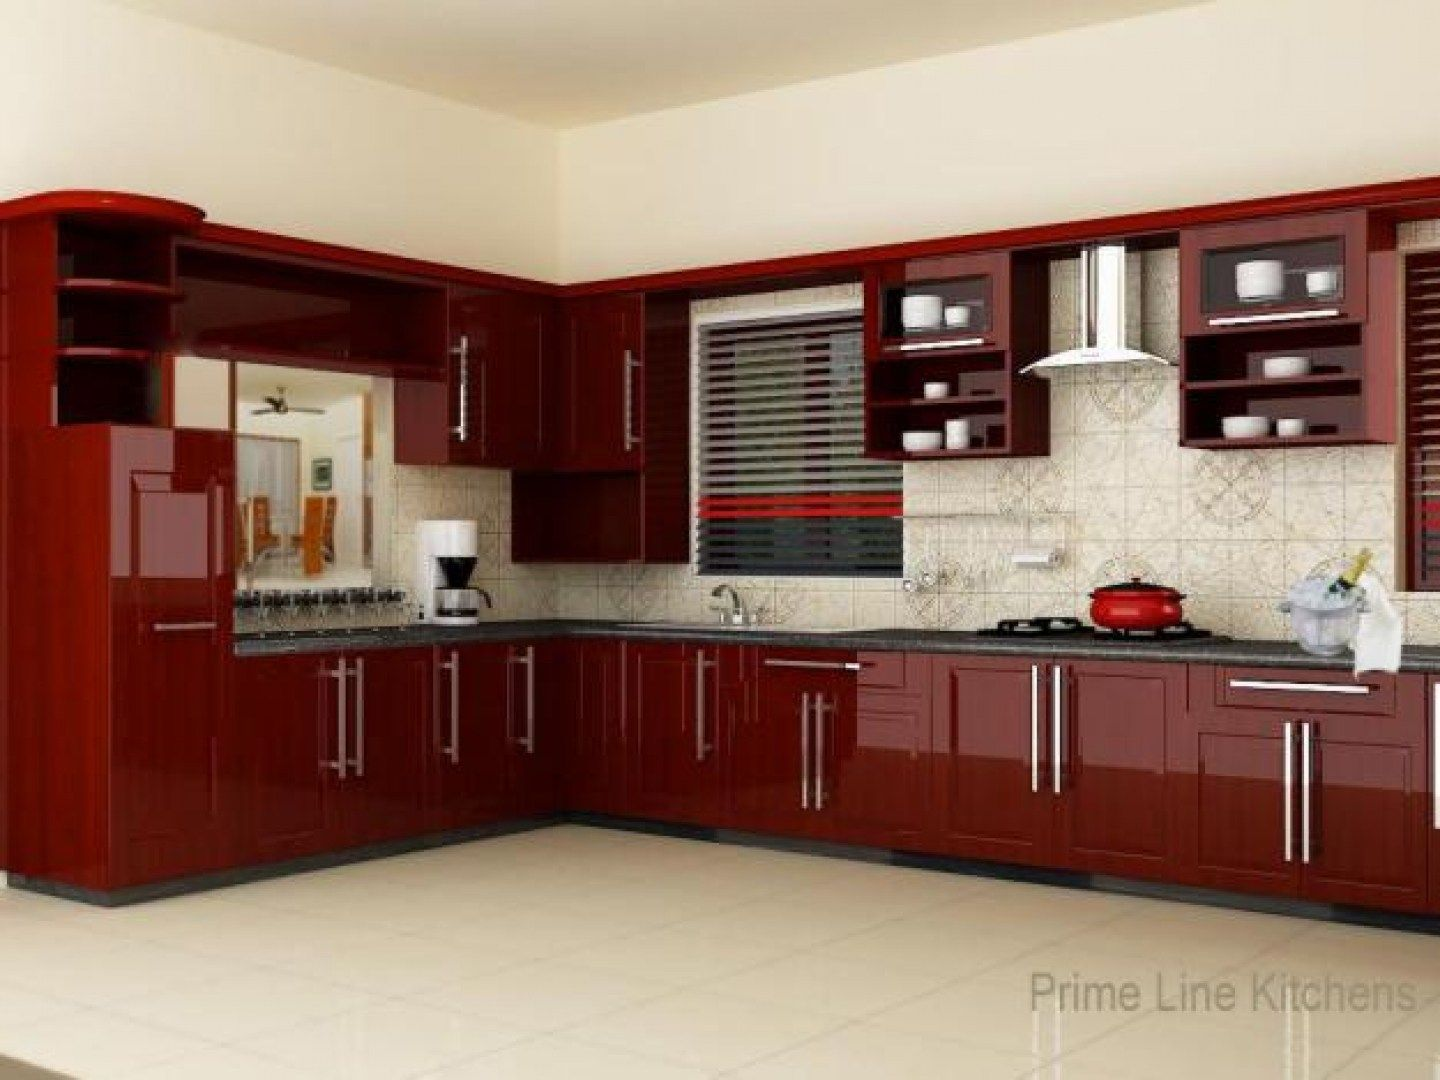 Kitchen design ideas kitchen woodwork designs hyderabad for Interior design ideas for kitchen cabinets